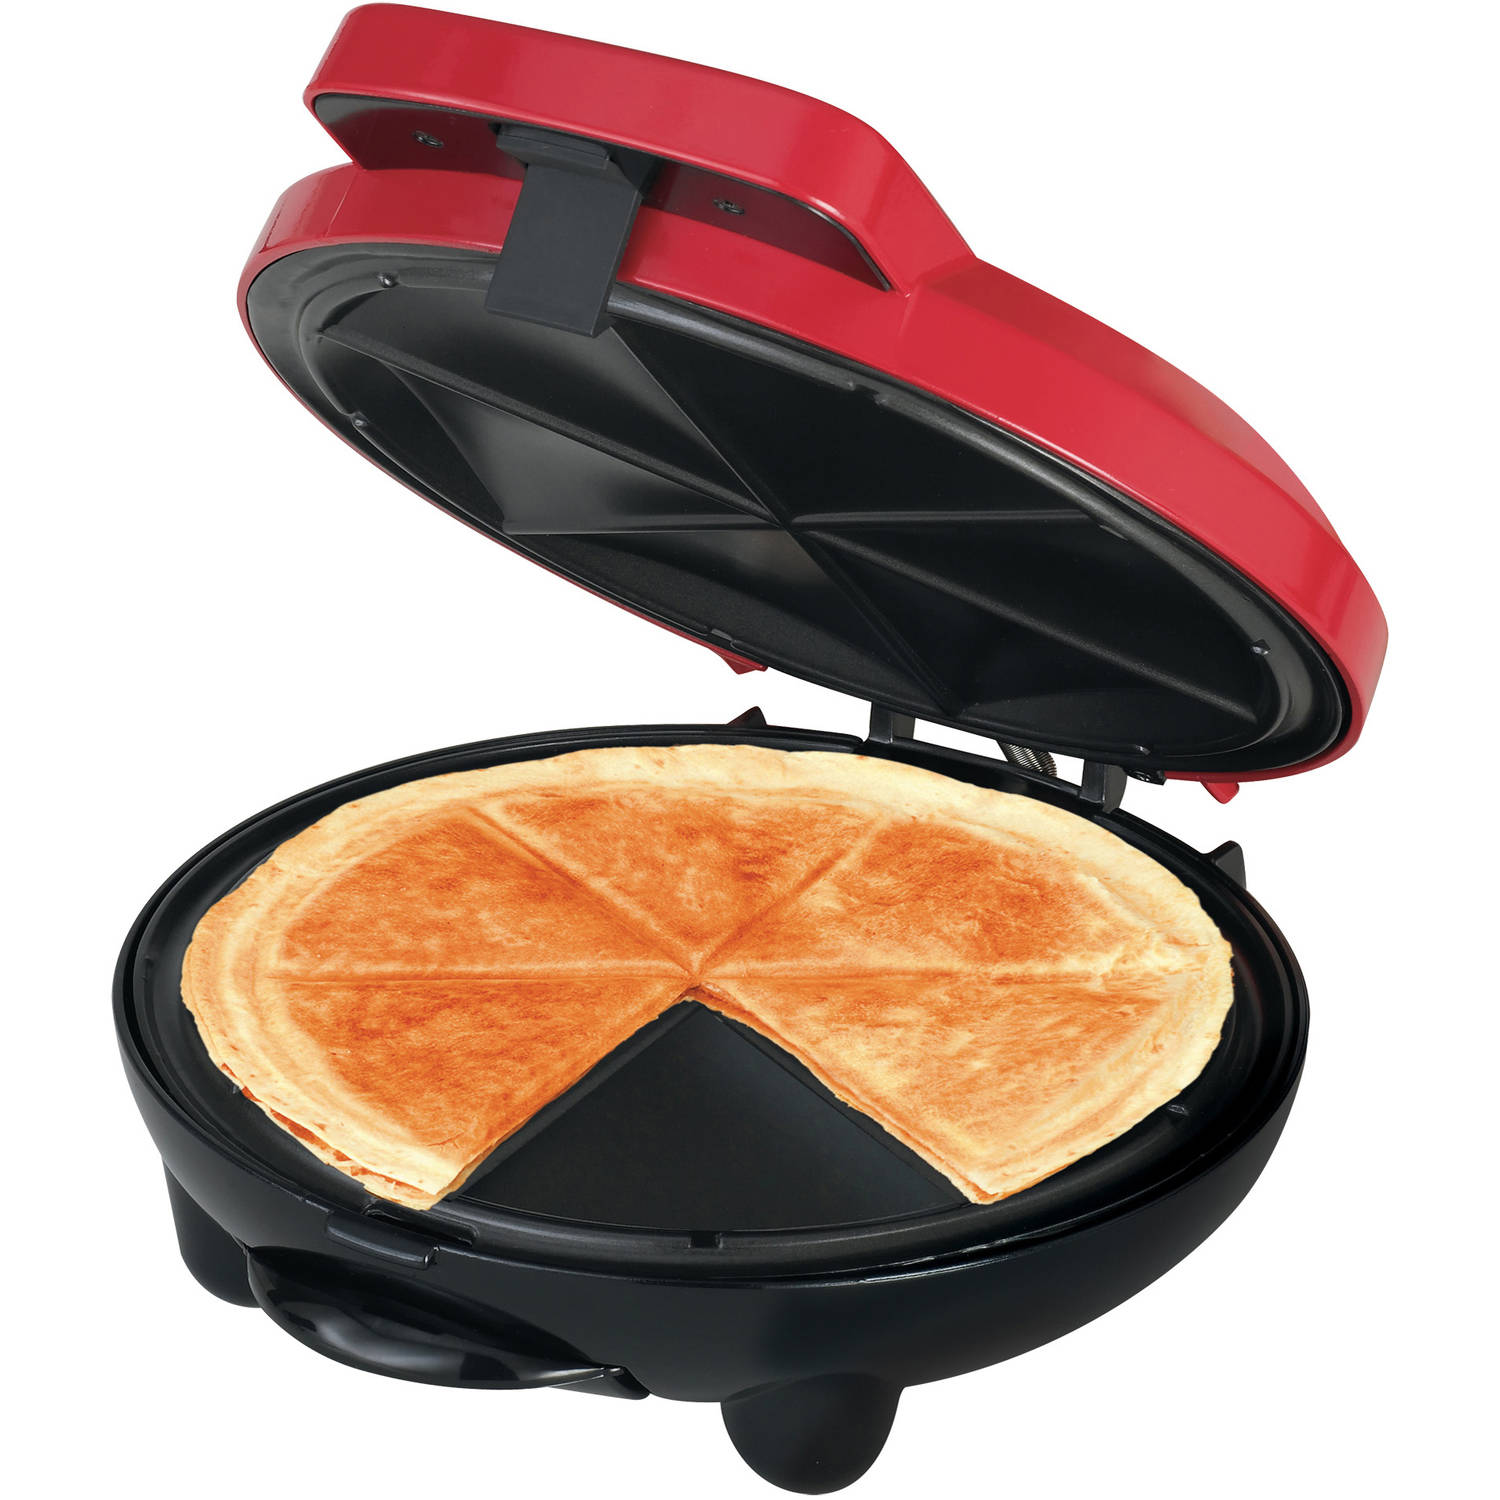 BLACK+DECKER Quesadilla Maker, 8-inch Plates,  Non-Stick, QM1088